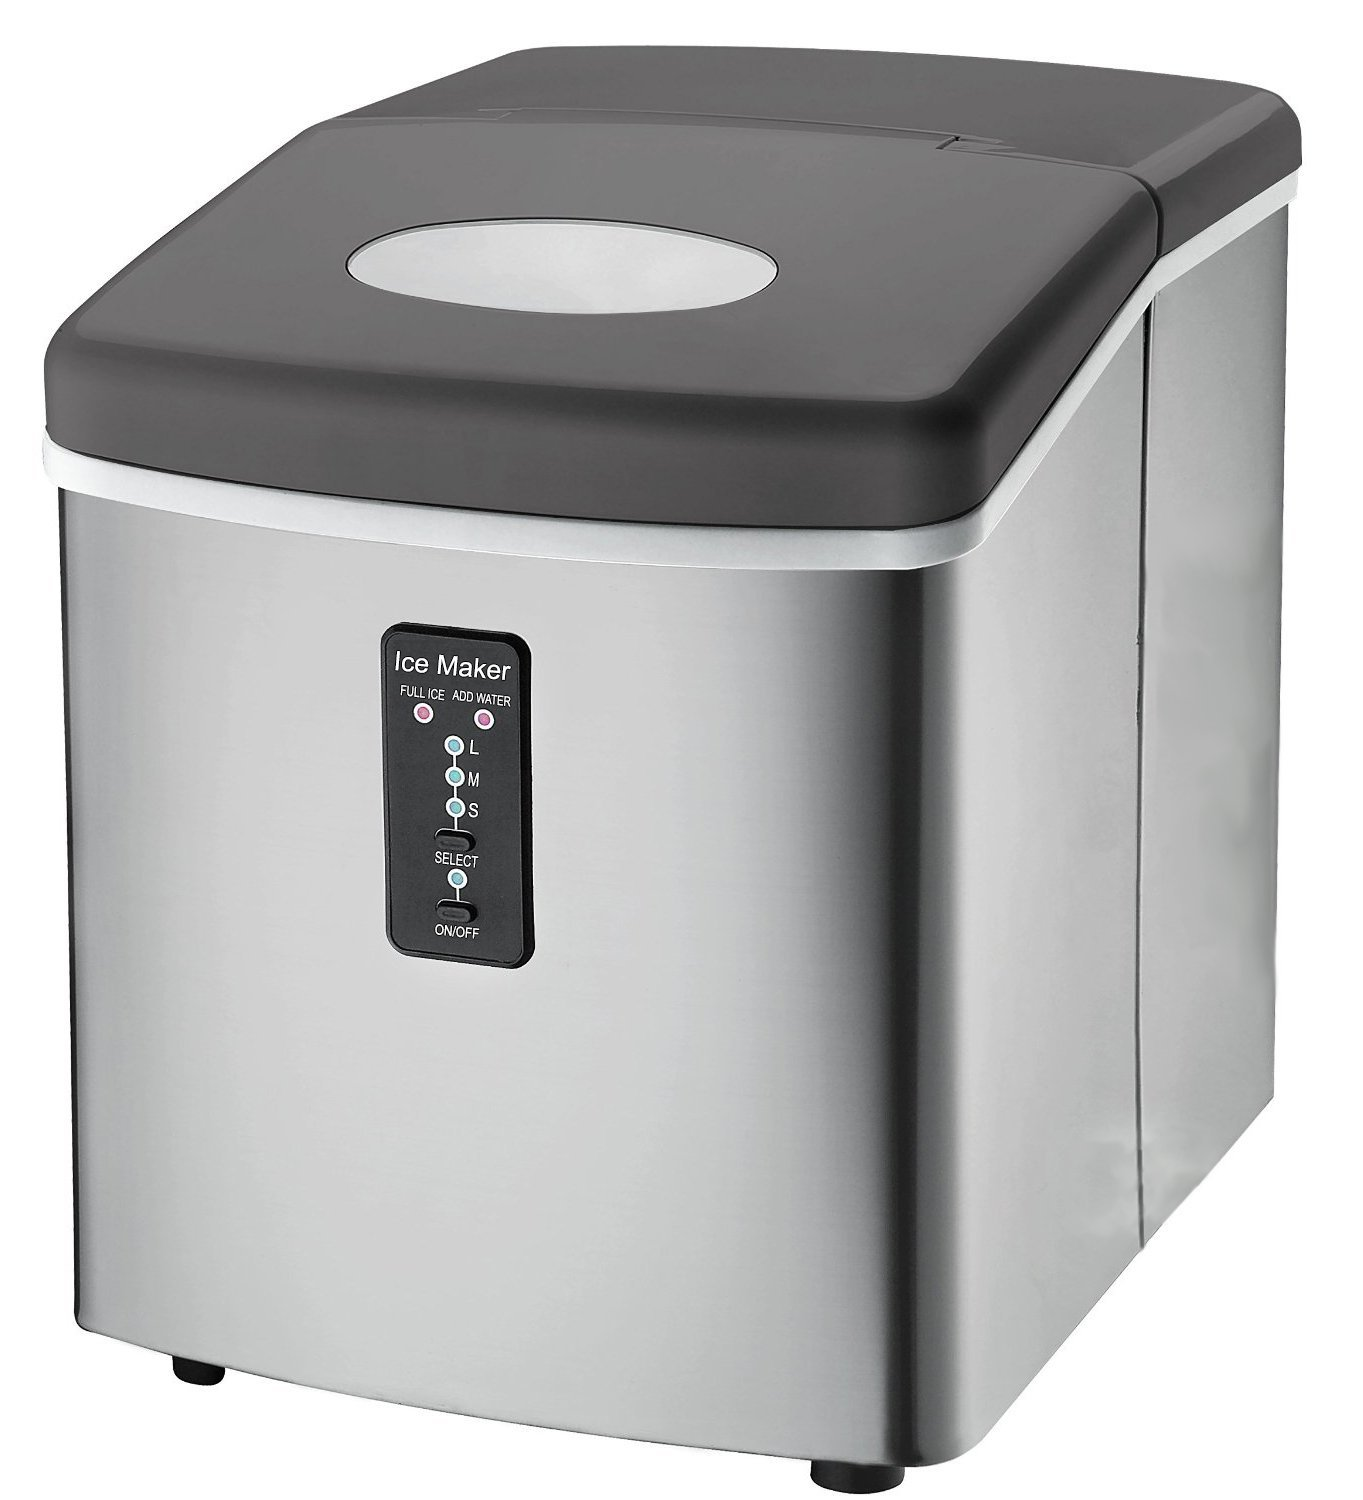 Traveller Location: Ice Machine - Portable, Counter Top Ice Maker Machine TG22 -  Produces 26 lbs Of Ice Per 24 Hours - Stainless Steel - Top Rated Ice Maker  For